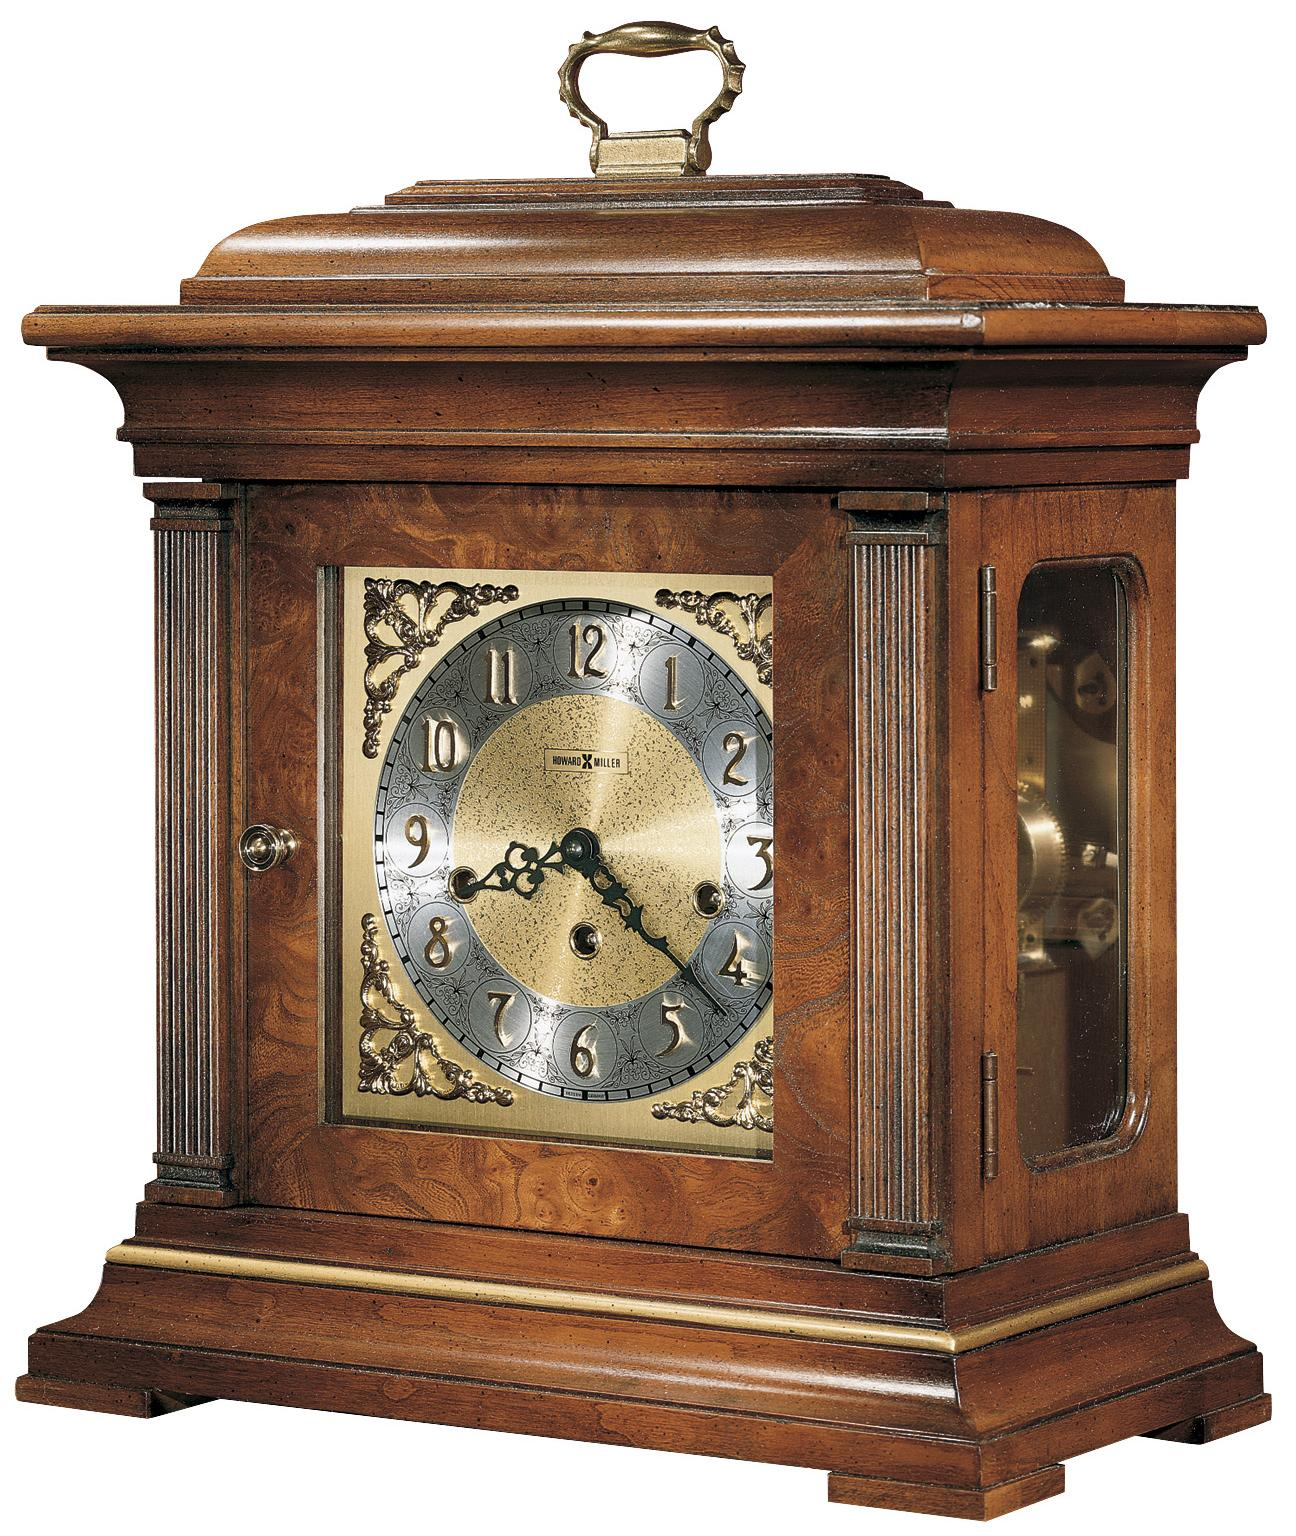 612 Thomas Tompion at Furniture and ApplianceMart